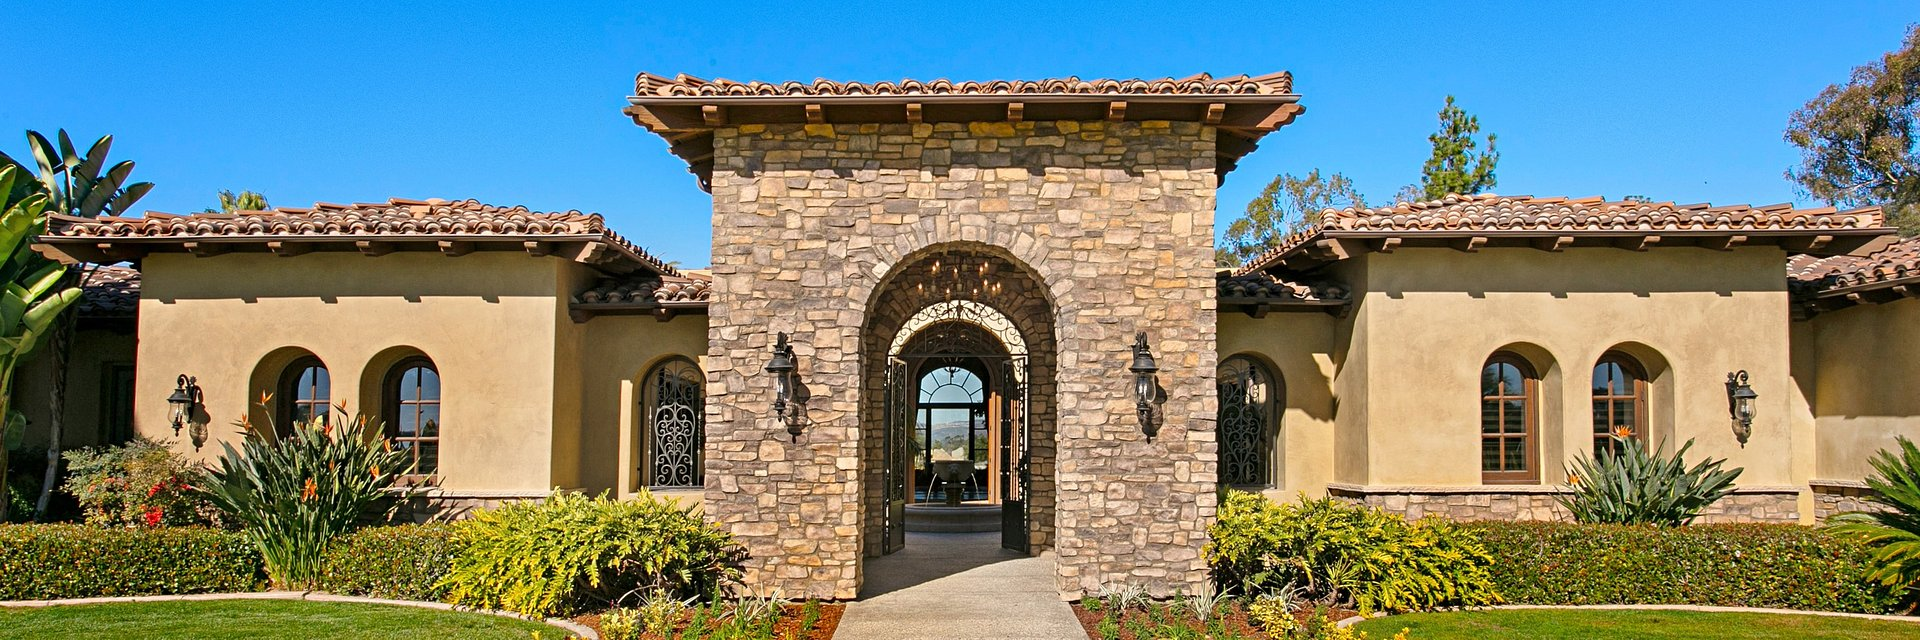 Coldwell Banker Residential Brokerage Lists Rancho Santa Fe Property for $6.299 Million